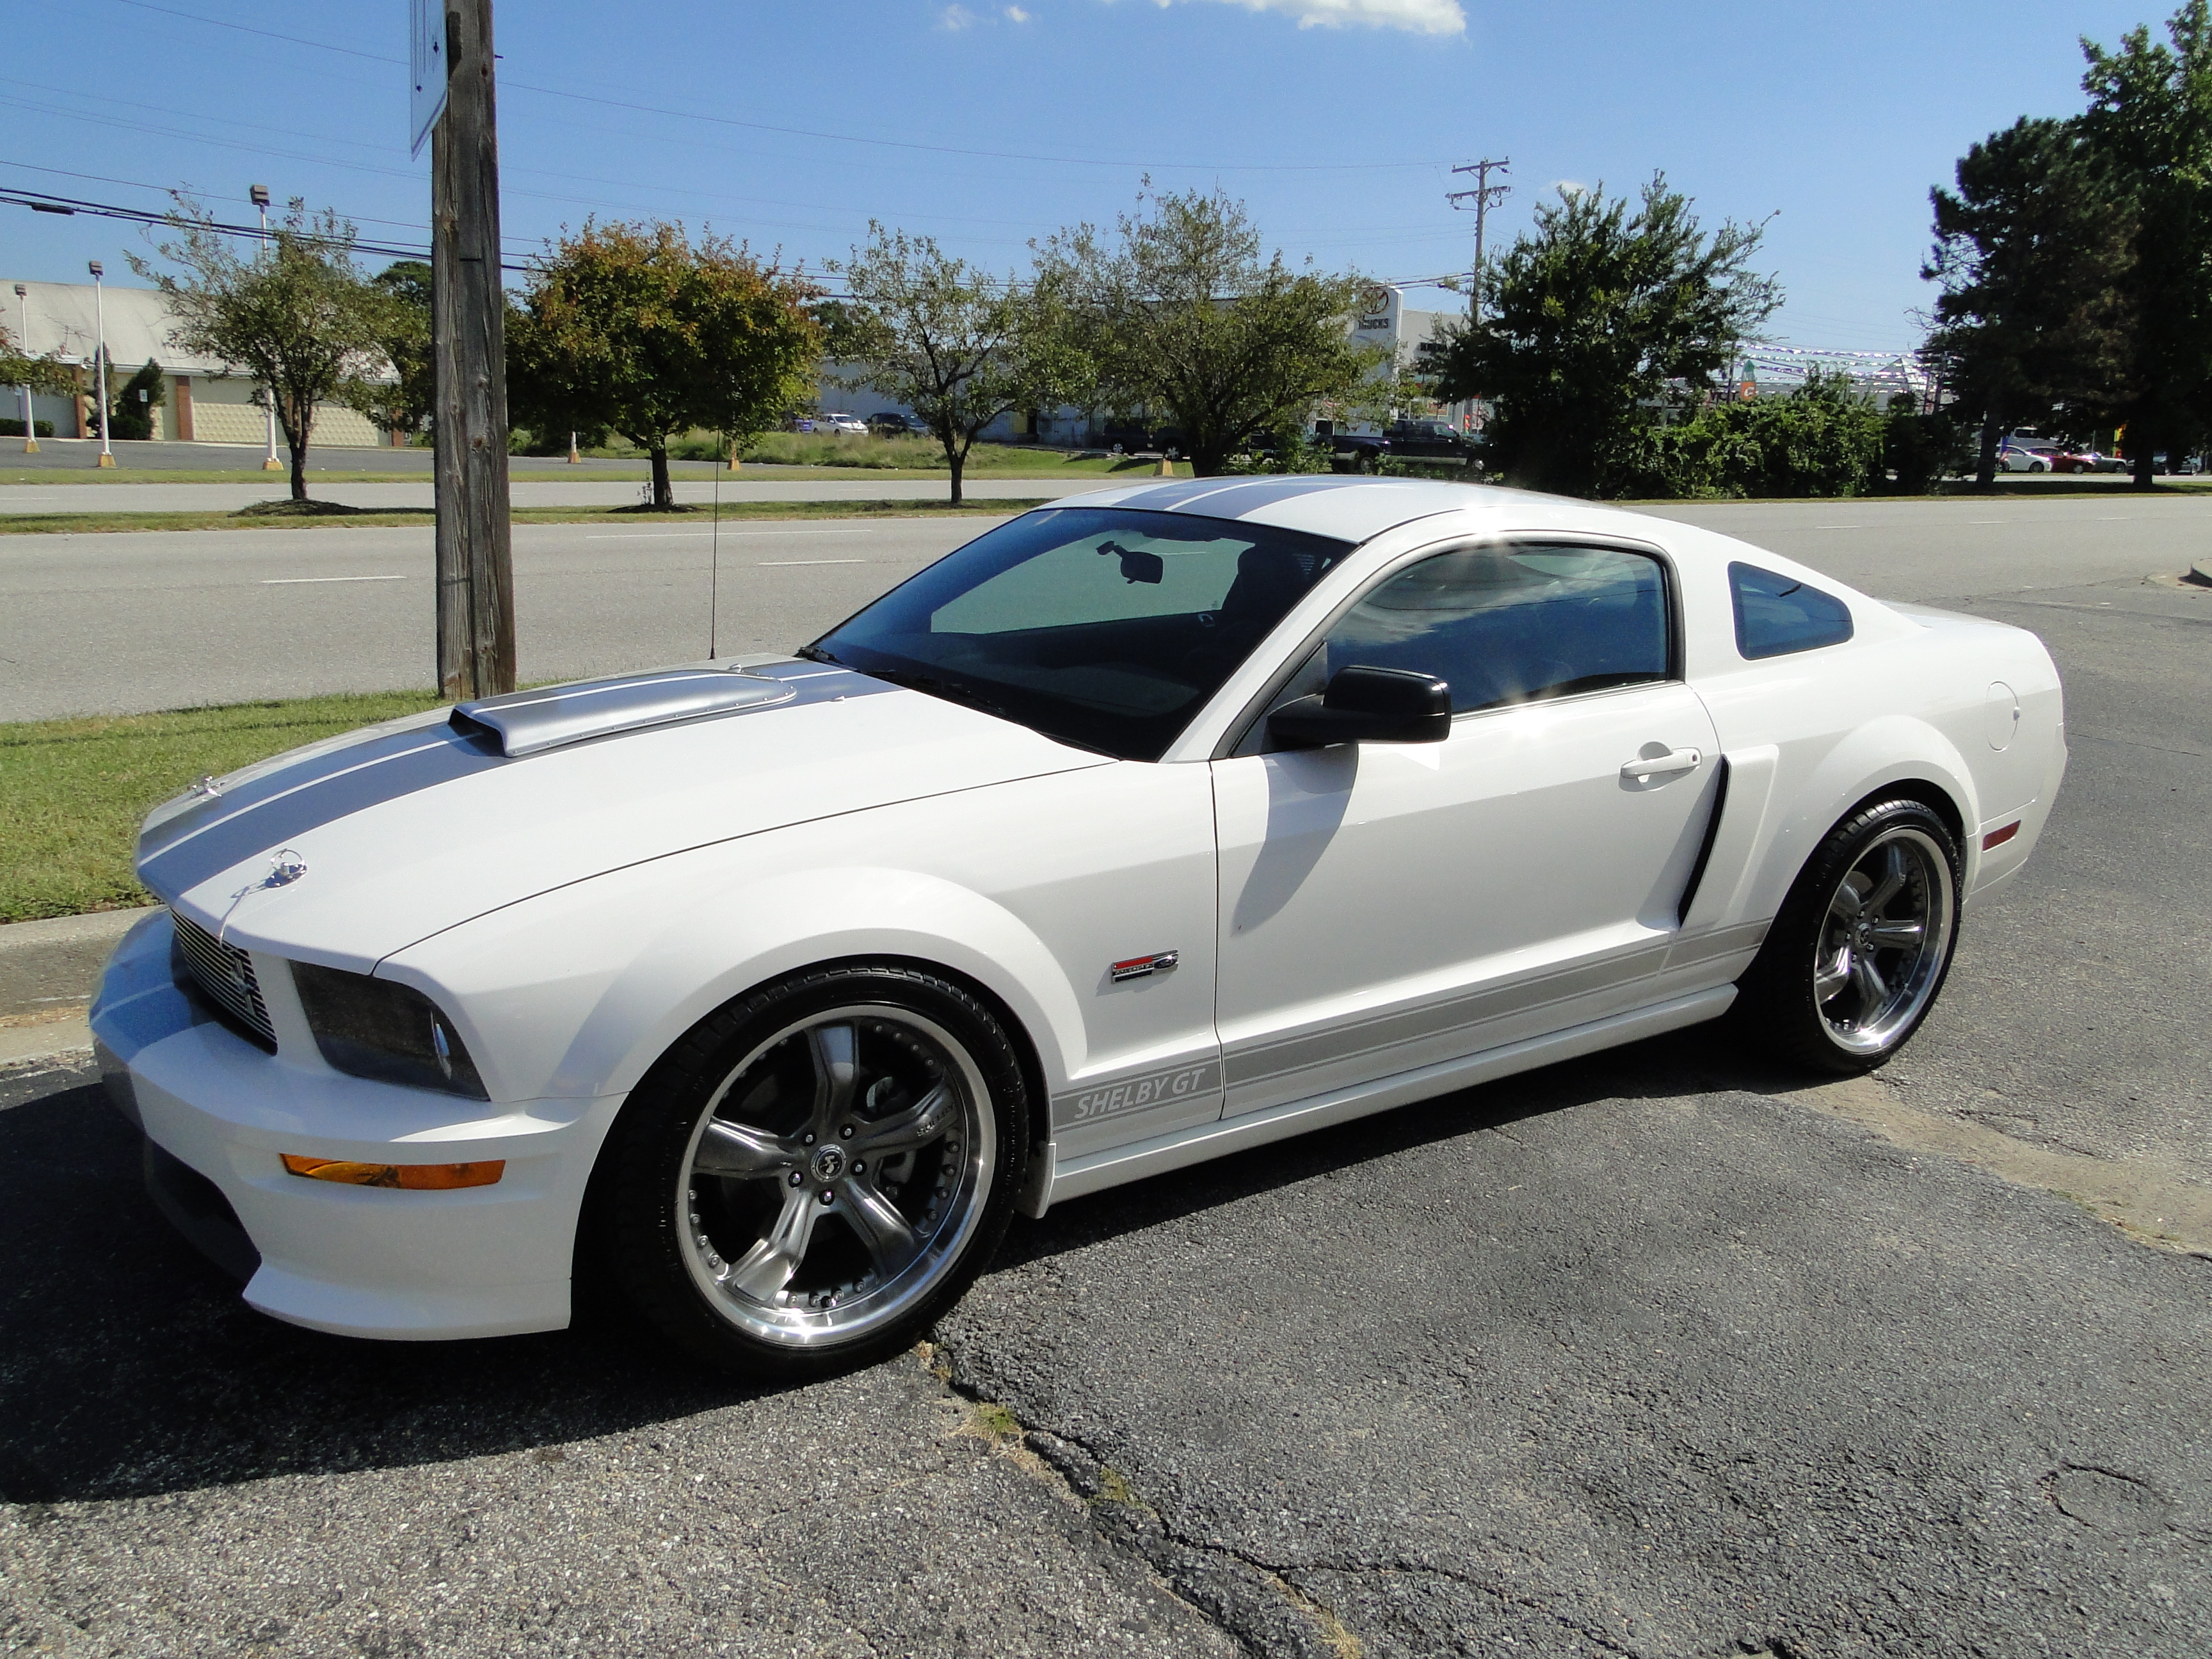 new 2007 ford mustang shelby gt glen burnie md baltimore r0235. Black Bedroom Furniture Sets. Home Design Ideas